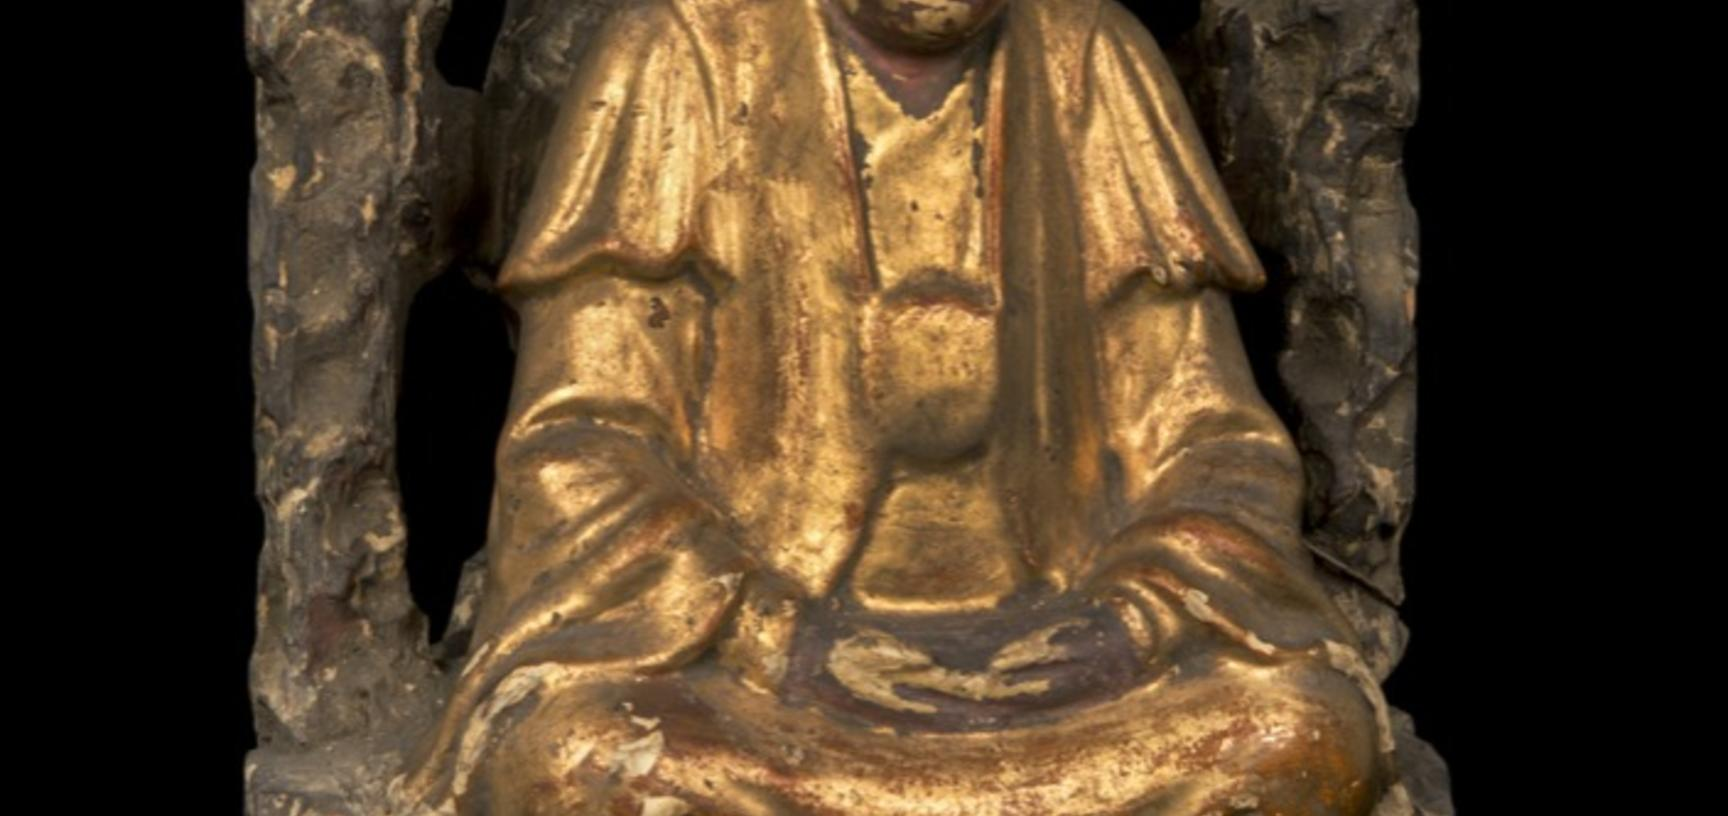 Wooden figure gilded in gold, seated under a bush.